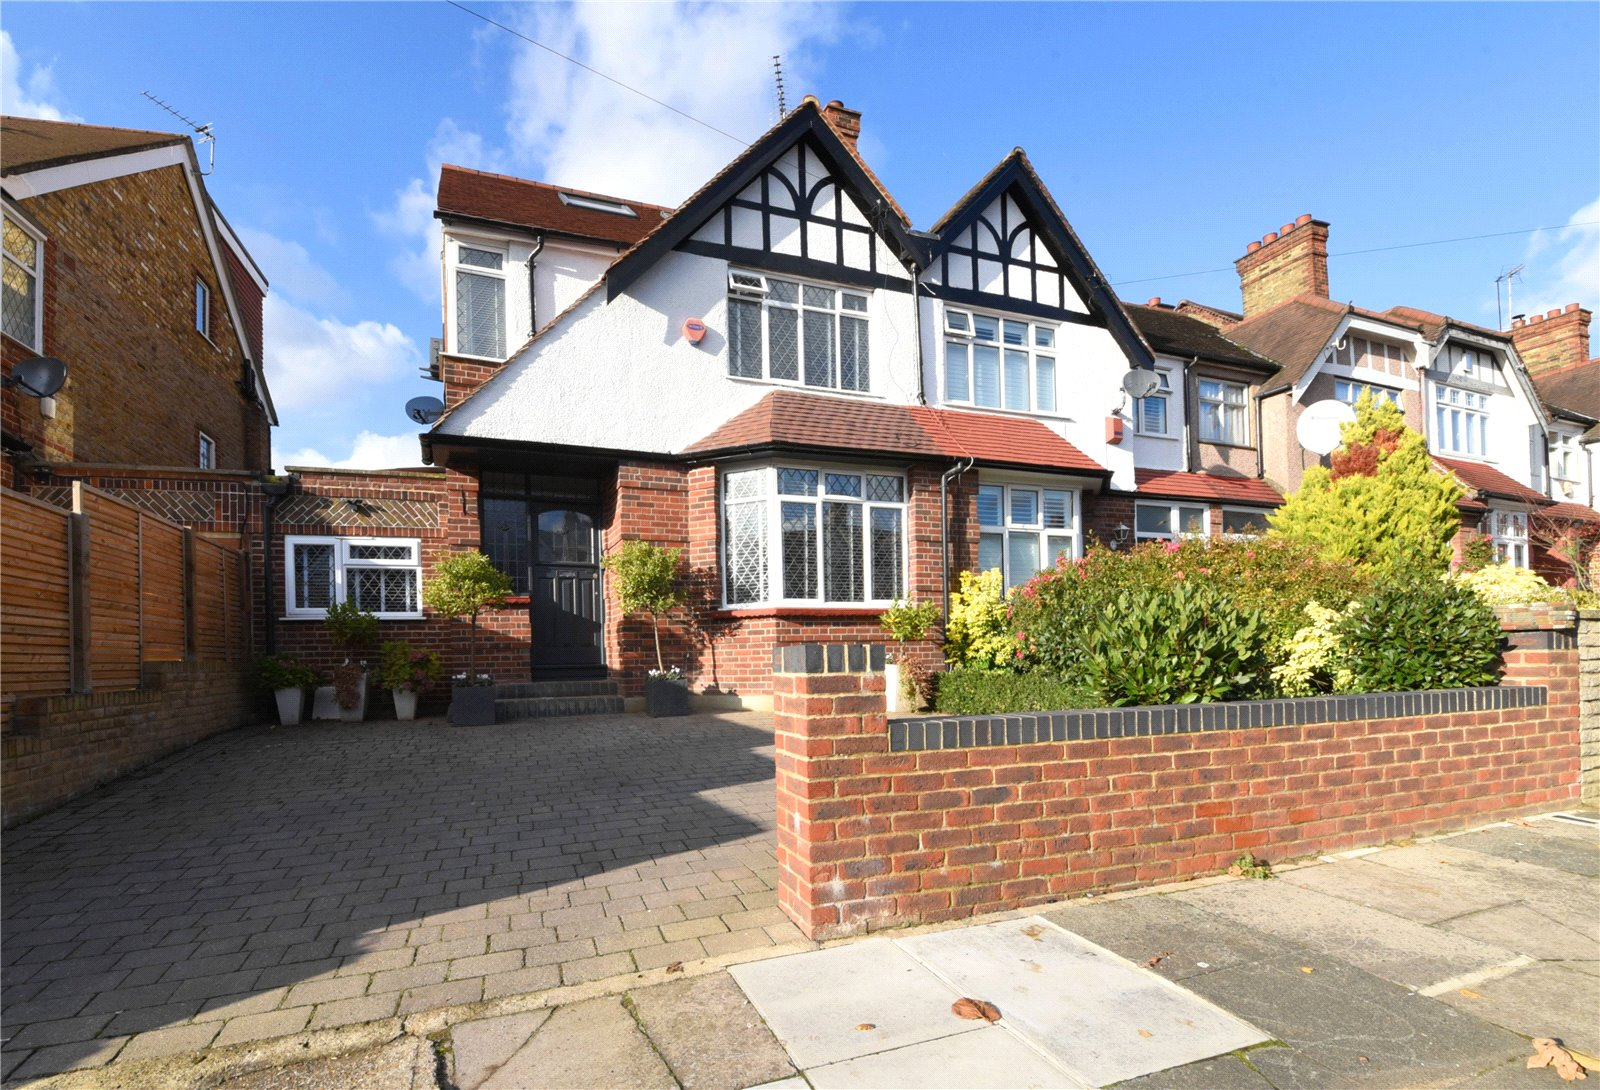 4 bed house for sale in Friern Barnet, N11 1HN, N11